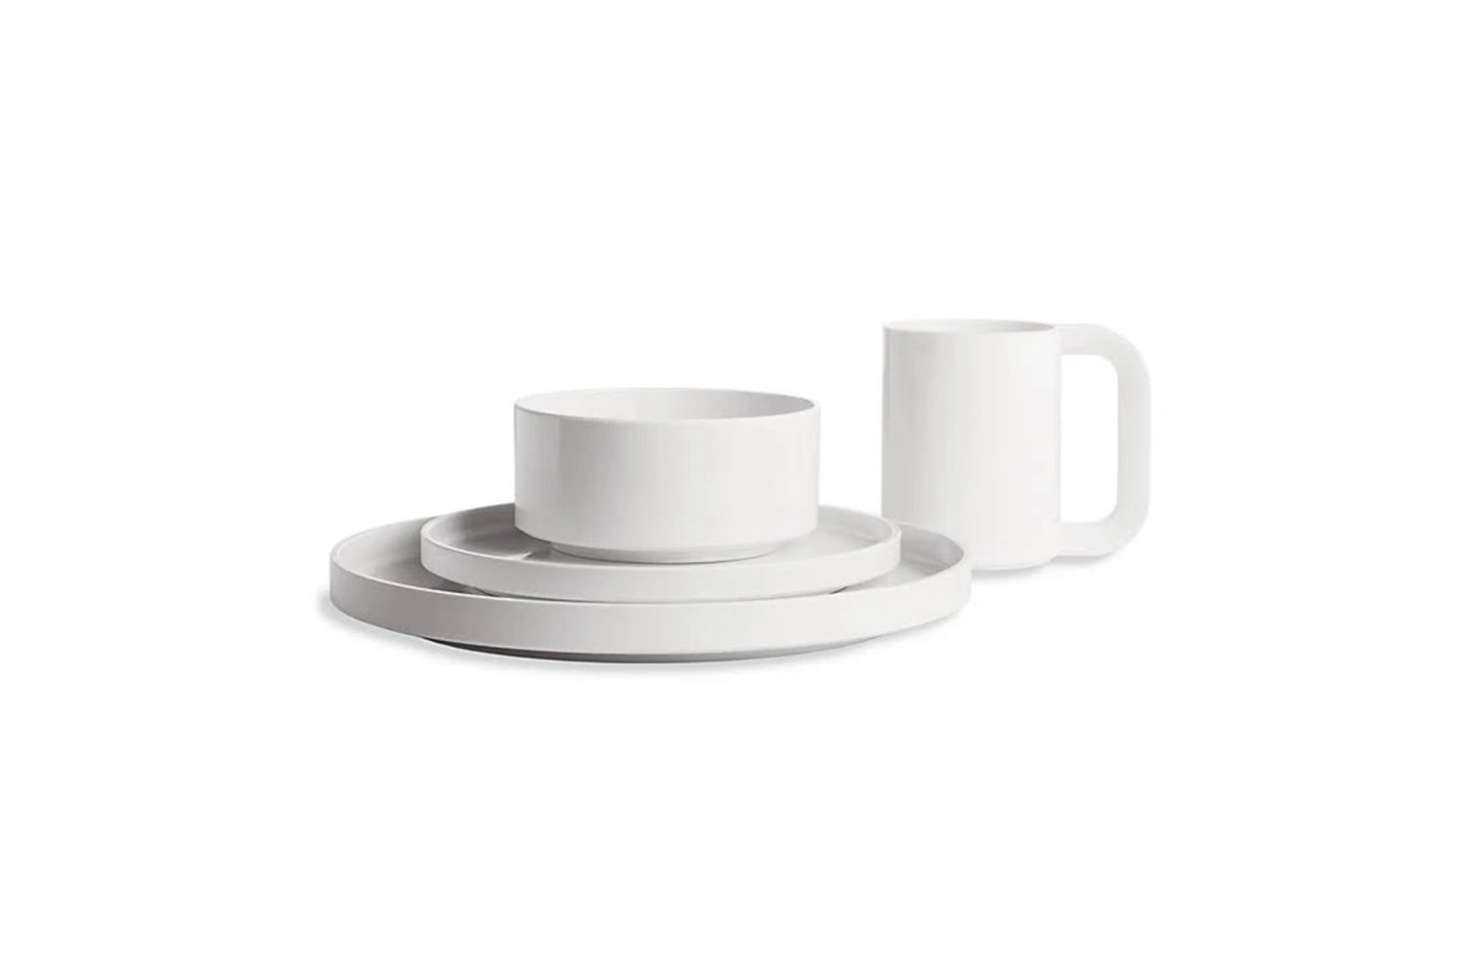 While we rarely advocate for non-natural materials, architects Massimo and Lella Vignelli's Stackable Dinnerware in melamine resin deserves a mention. Designed in 1964, the set has a timelessness and has been reimagined in a range of colors. (Because it's in melamine, it's great for outdoor dining and picnics.) The Stackable Dinnerware Dinner Plate is $12, Stackable Dinnerware Soup Bowl is $10, and the Stackable Dinnerware Salad Plate is $10 at the MoMA Design Store.